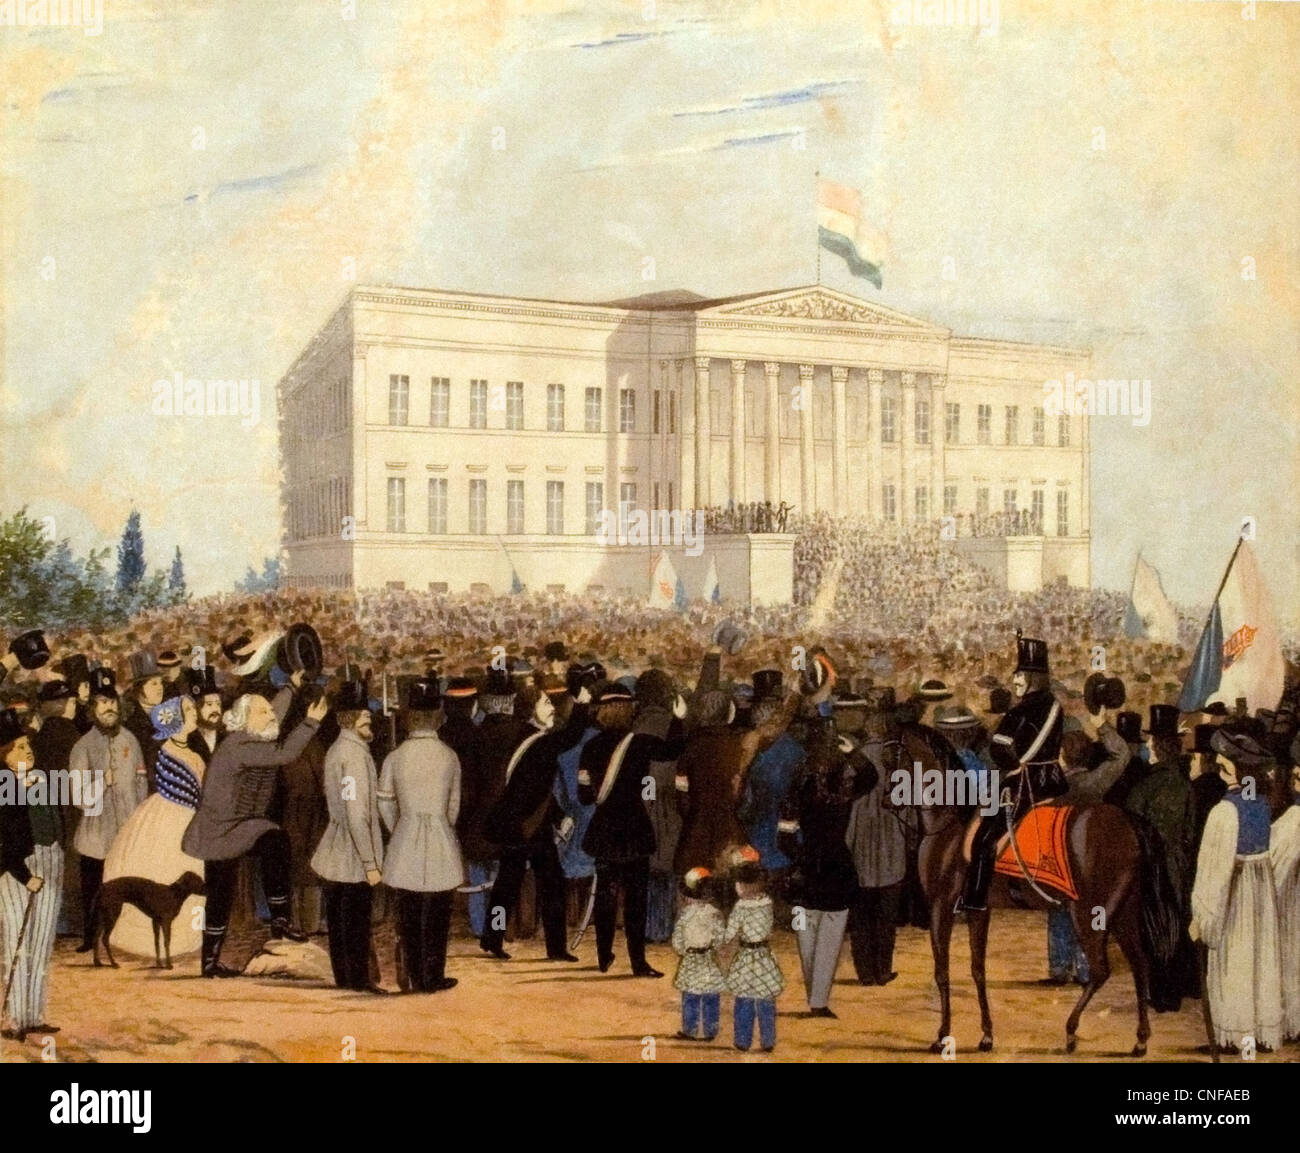 Rally in front of the National Museum, March 15, 1848 - Stock Image